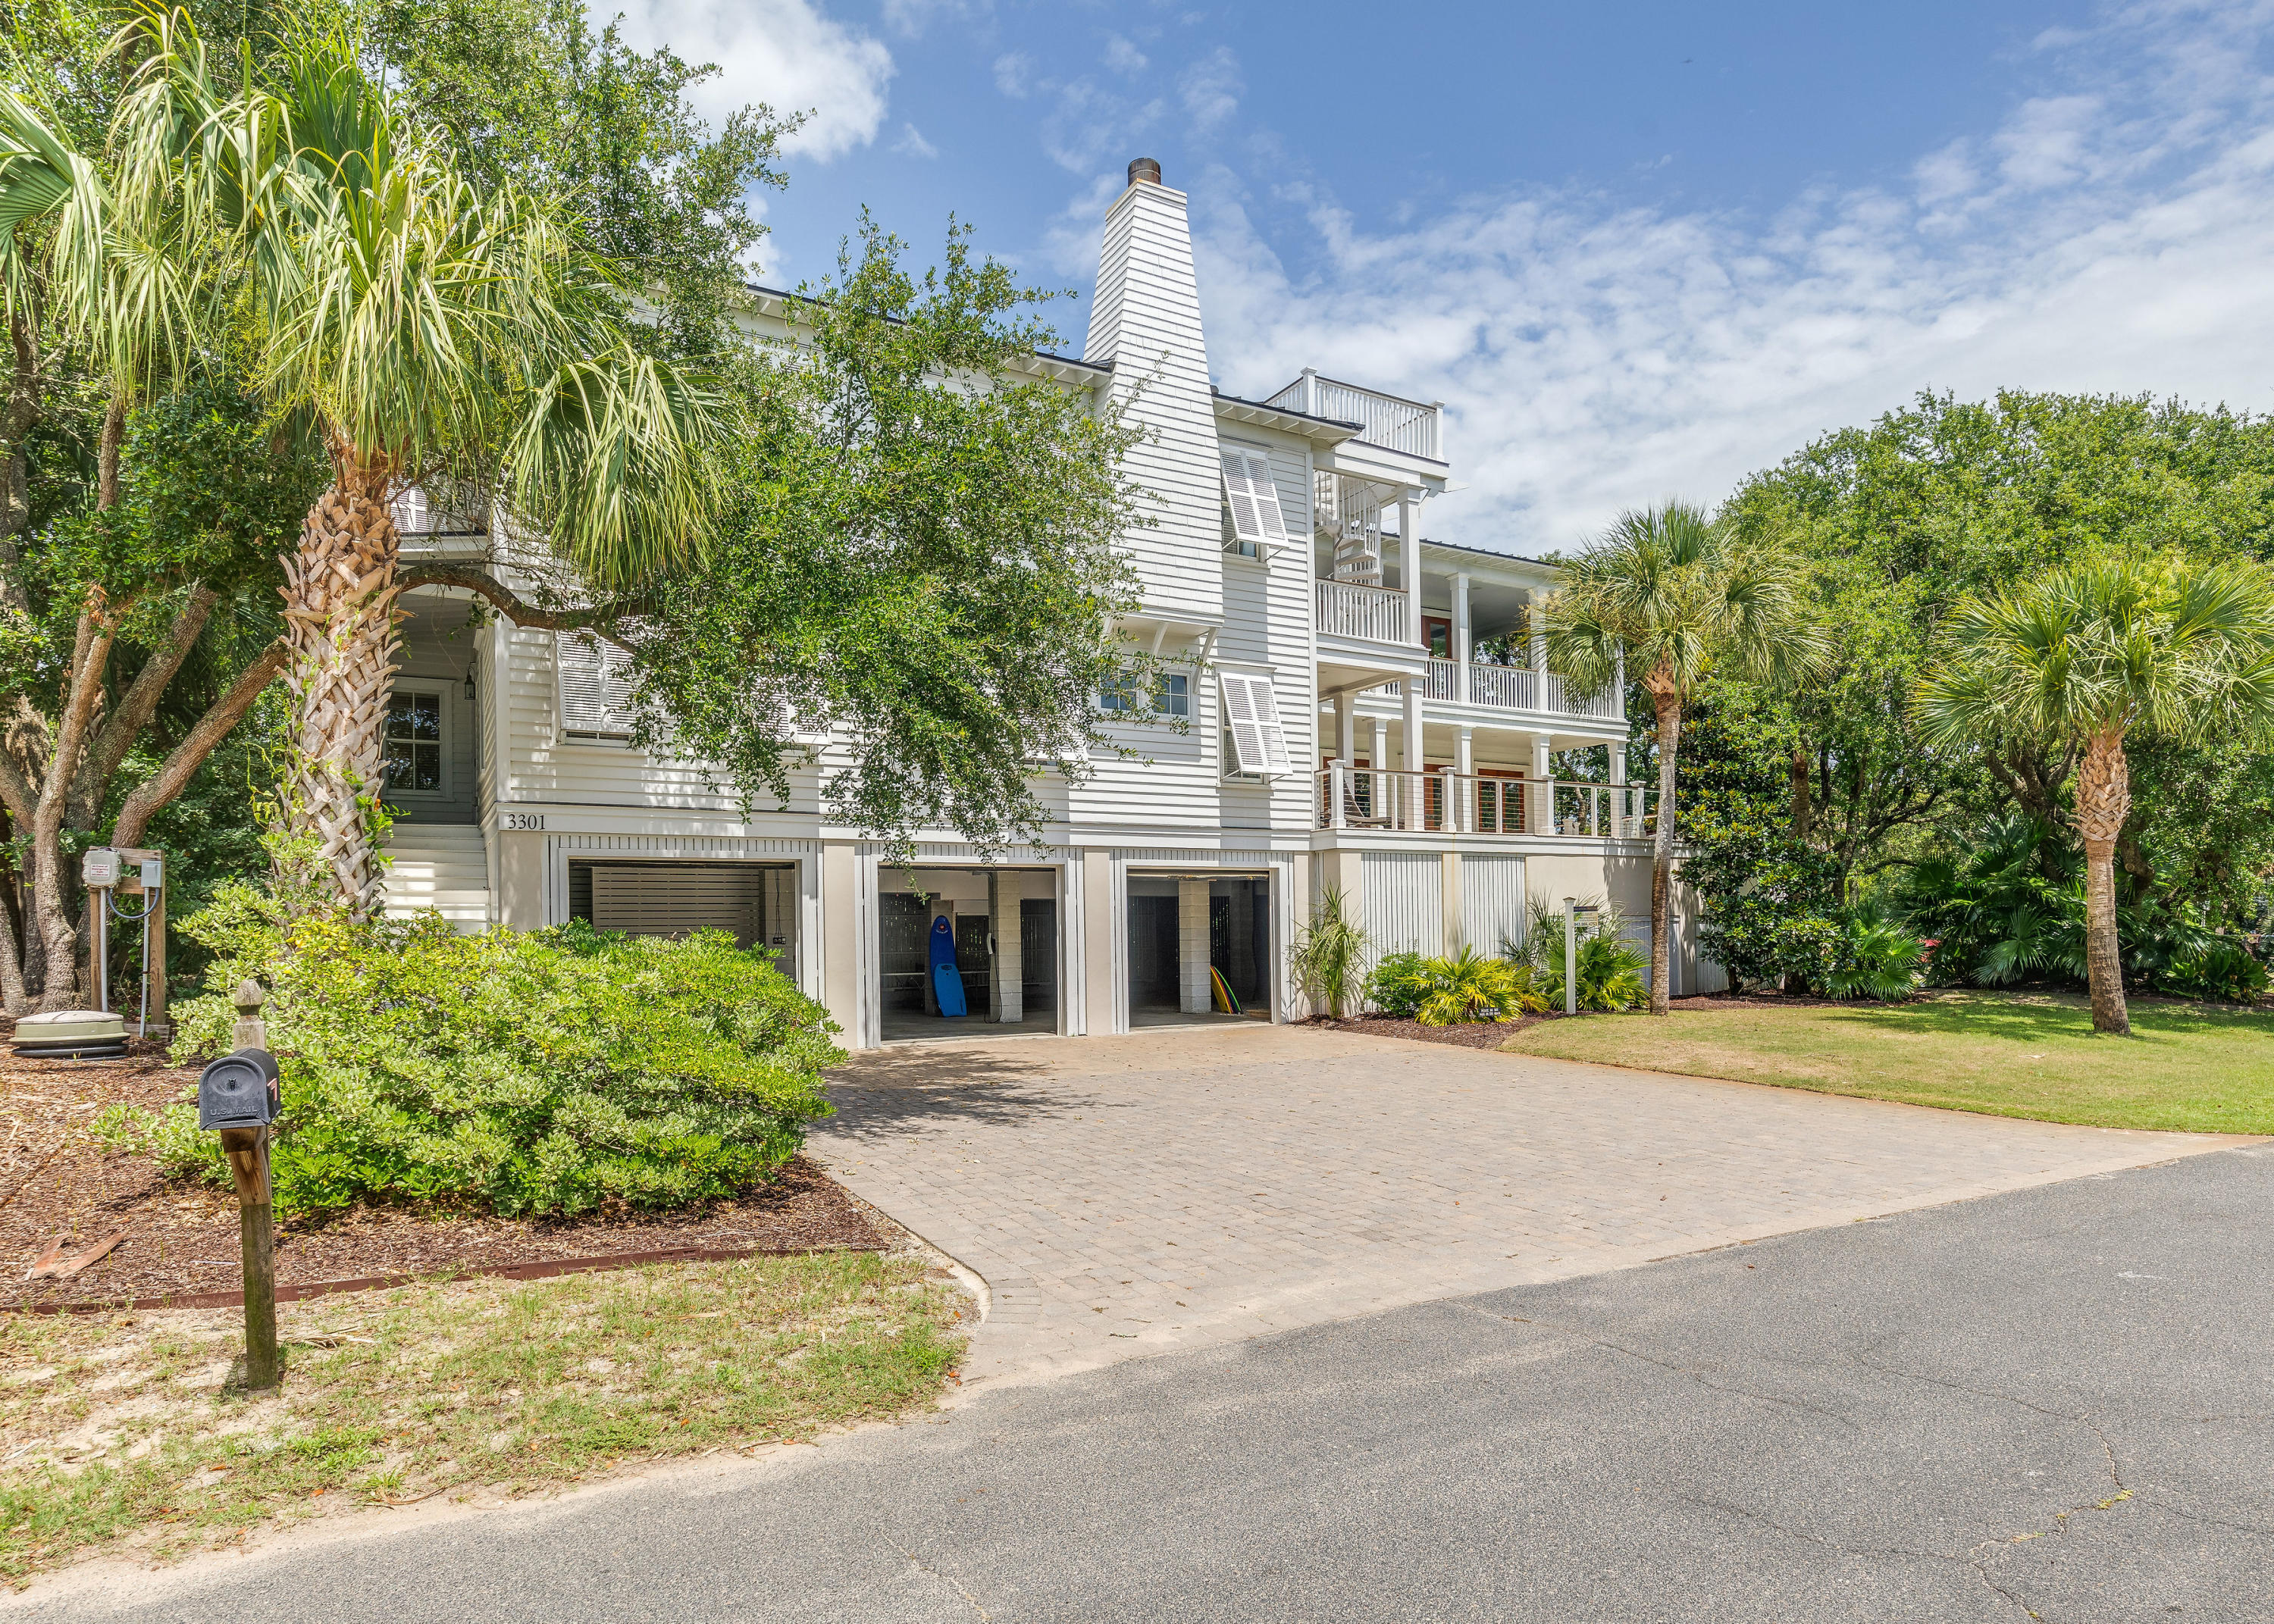 Isle of Palms Homes For Sale - 3301 Palm, Isle of Palms, SC - 7